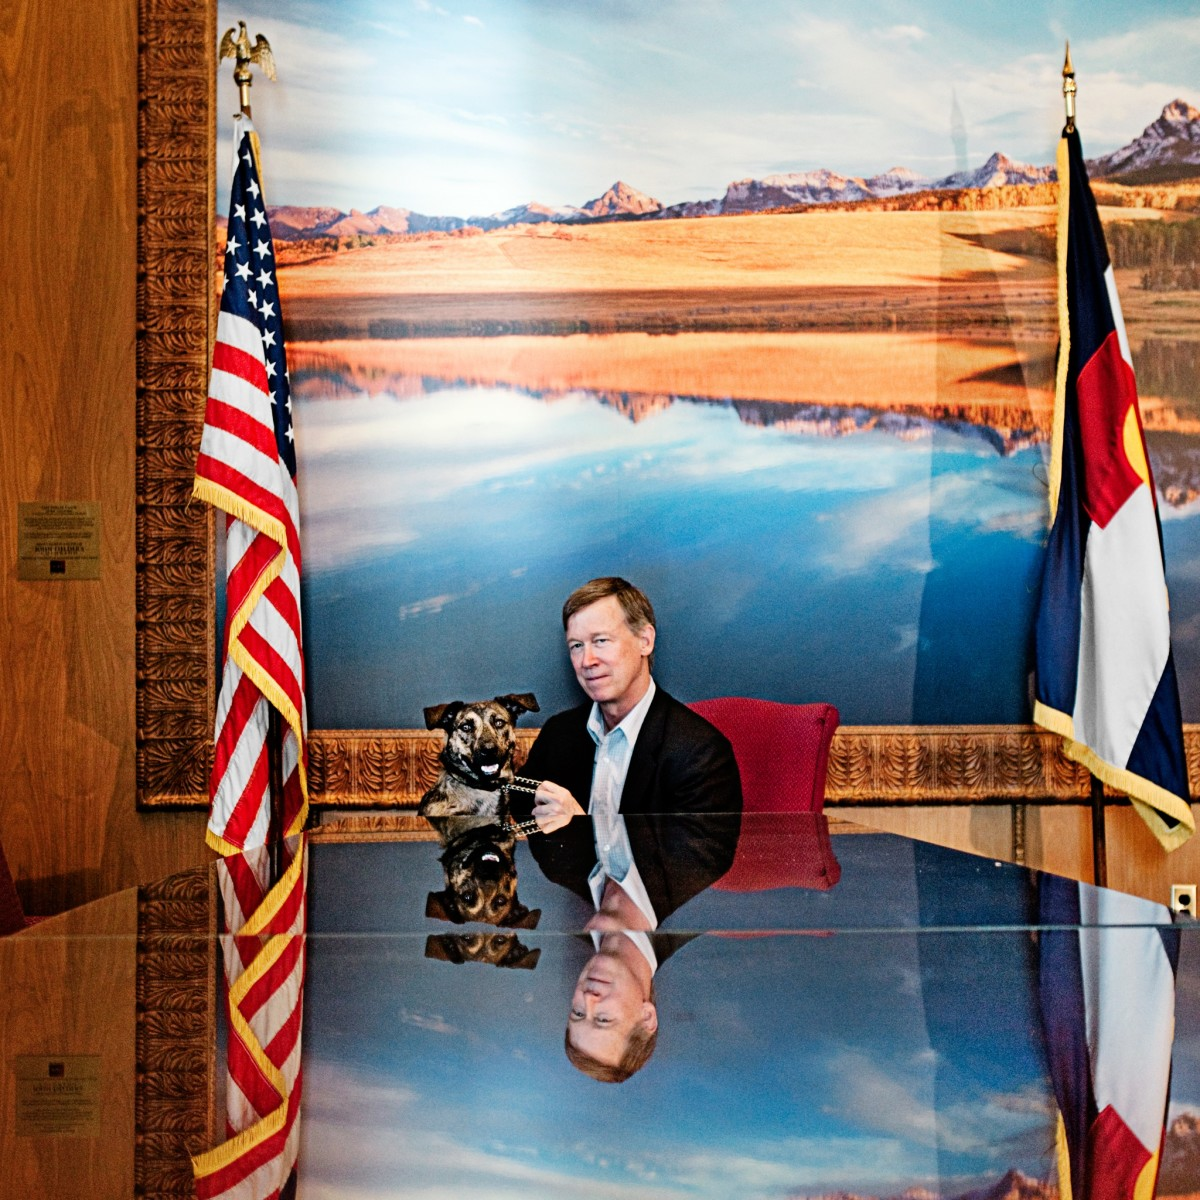 Colorado's Animal Advocate Governor Hickenlooper Wins!